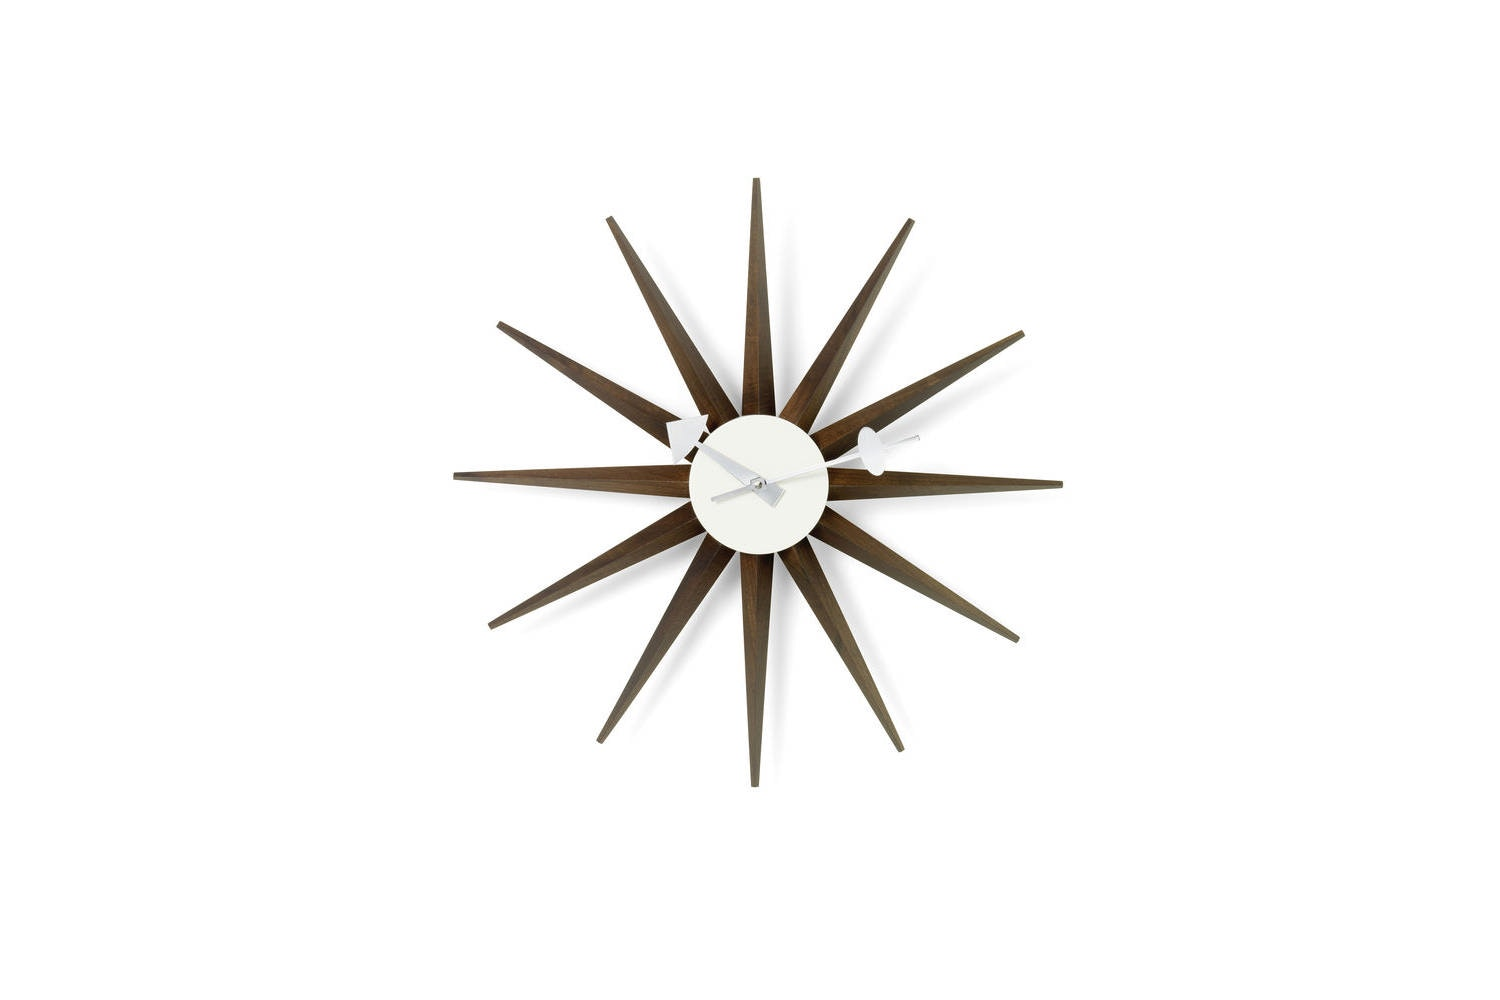 Sunburst Clock - Walnut by George Nelson for Vitra